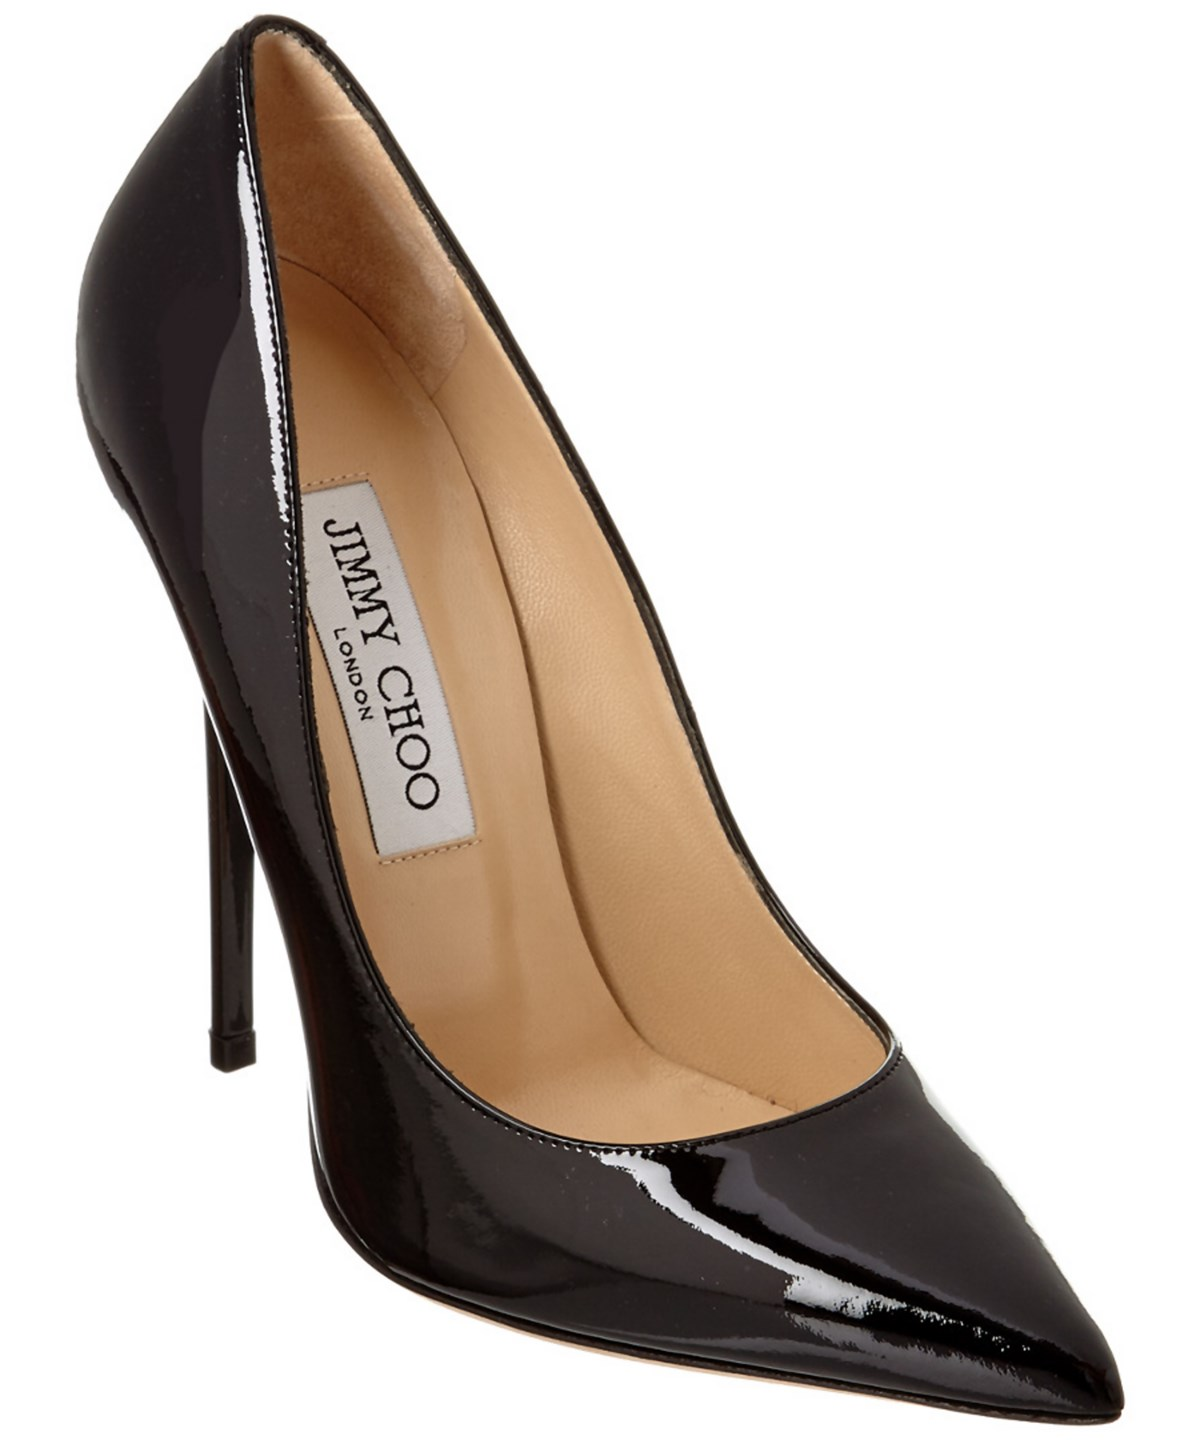 Jimmy Choo Anouk Patent Pointy-toe Pump In Black